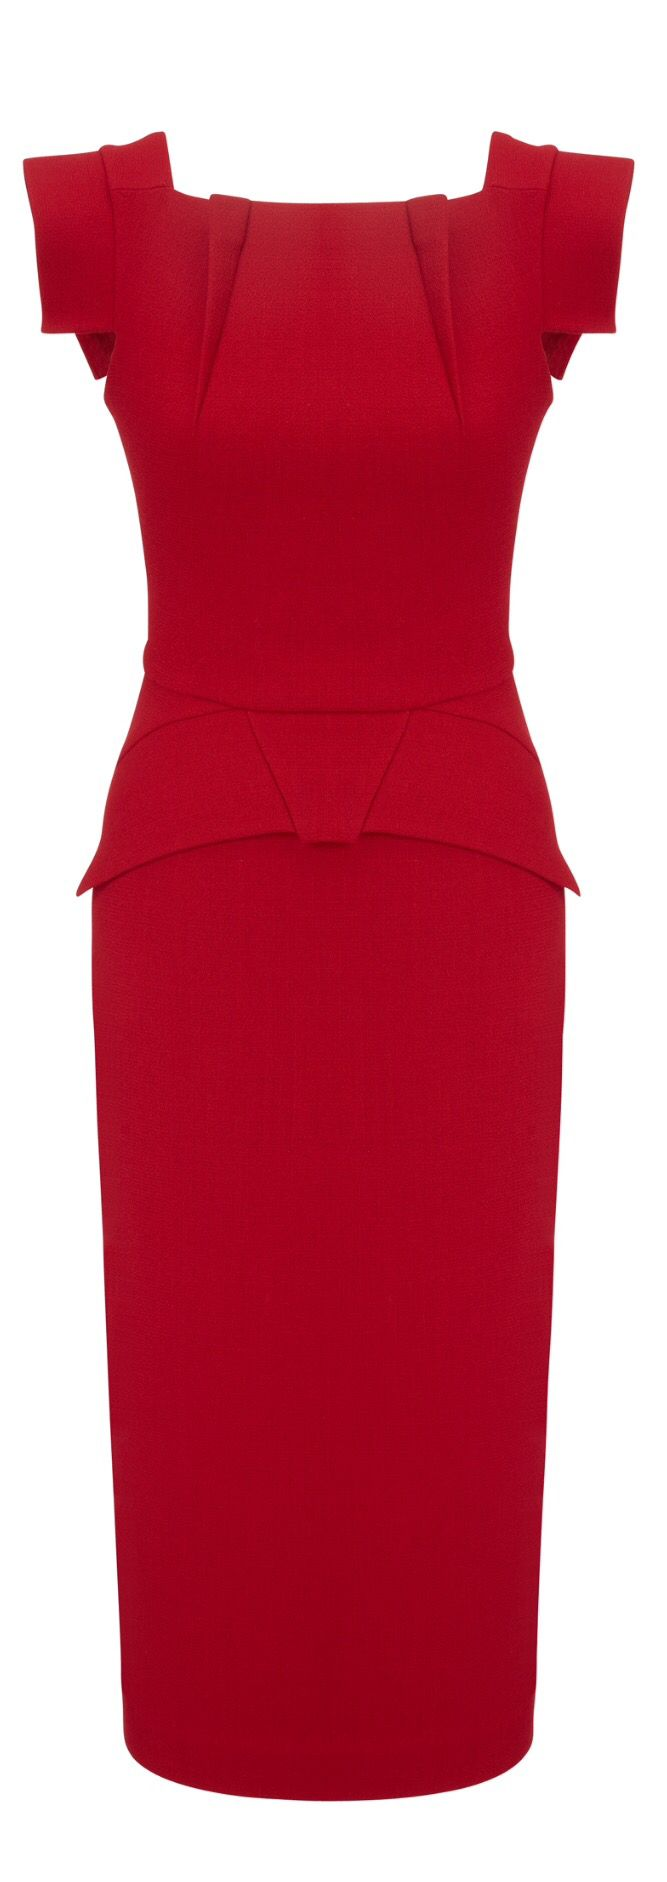 Roland Mouret.... YES TO THE DRESS!!!